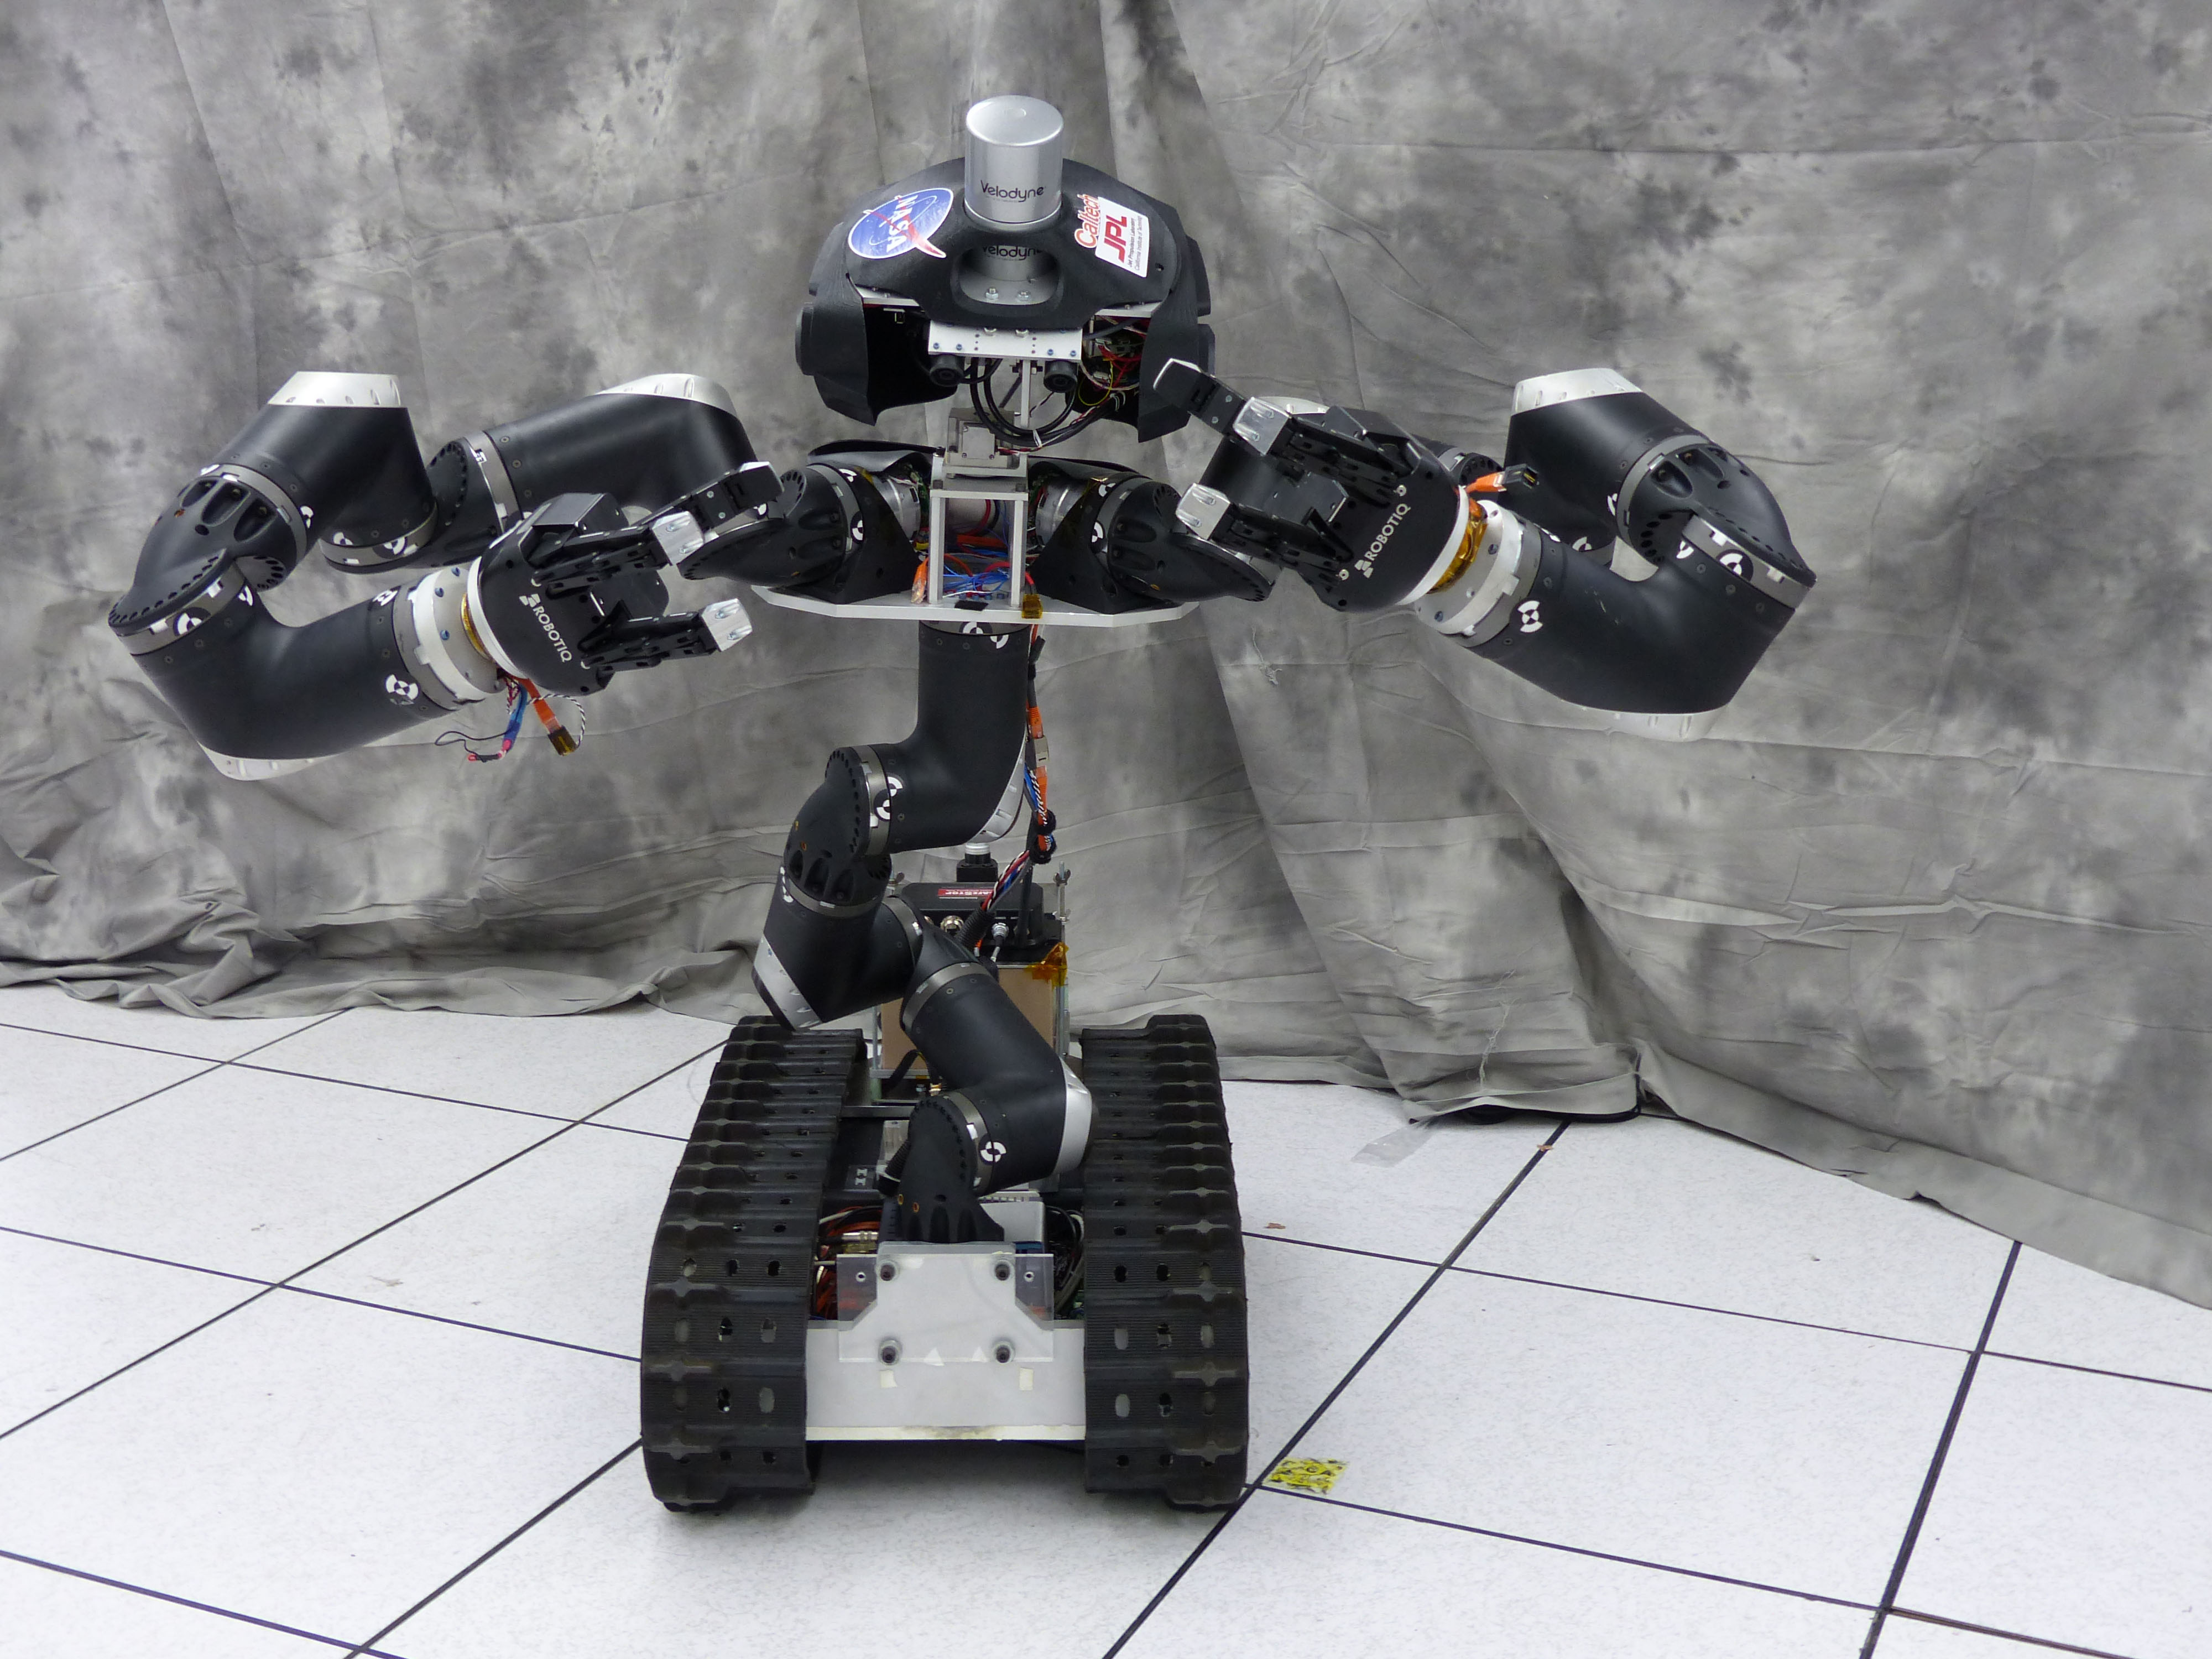 Surrogate, nicknamed 'Surge,' is a robot designed and built at NASA's Jet Propulsion Laboratory in Pasadena, California.